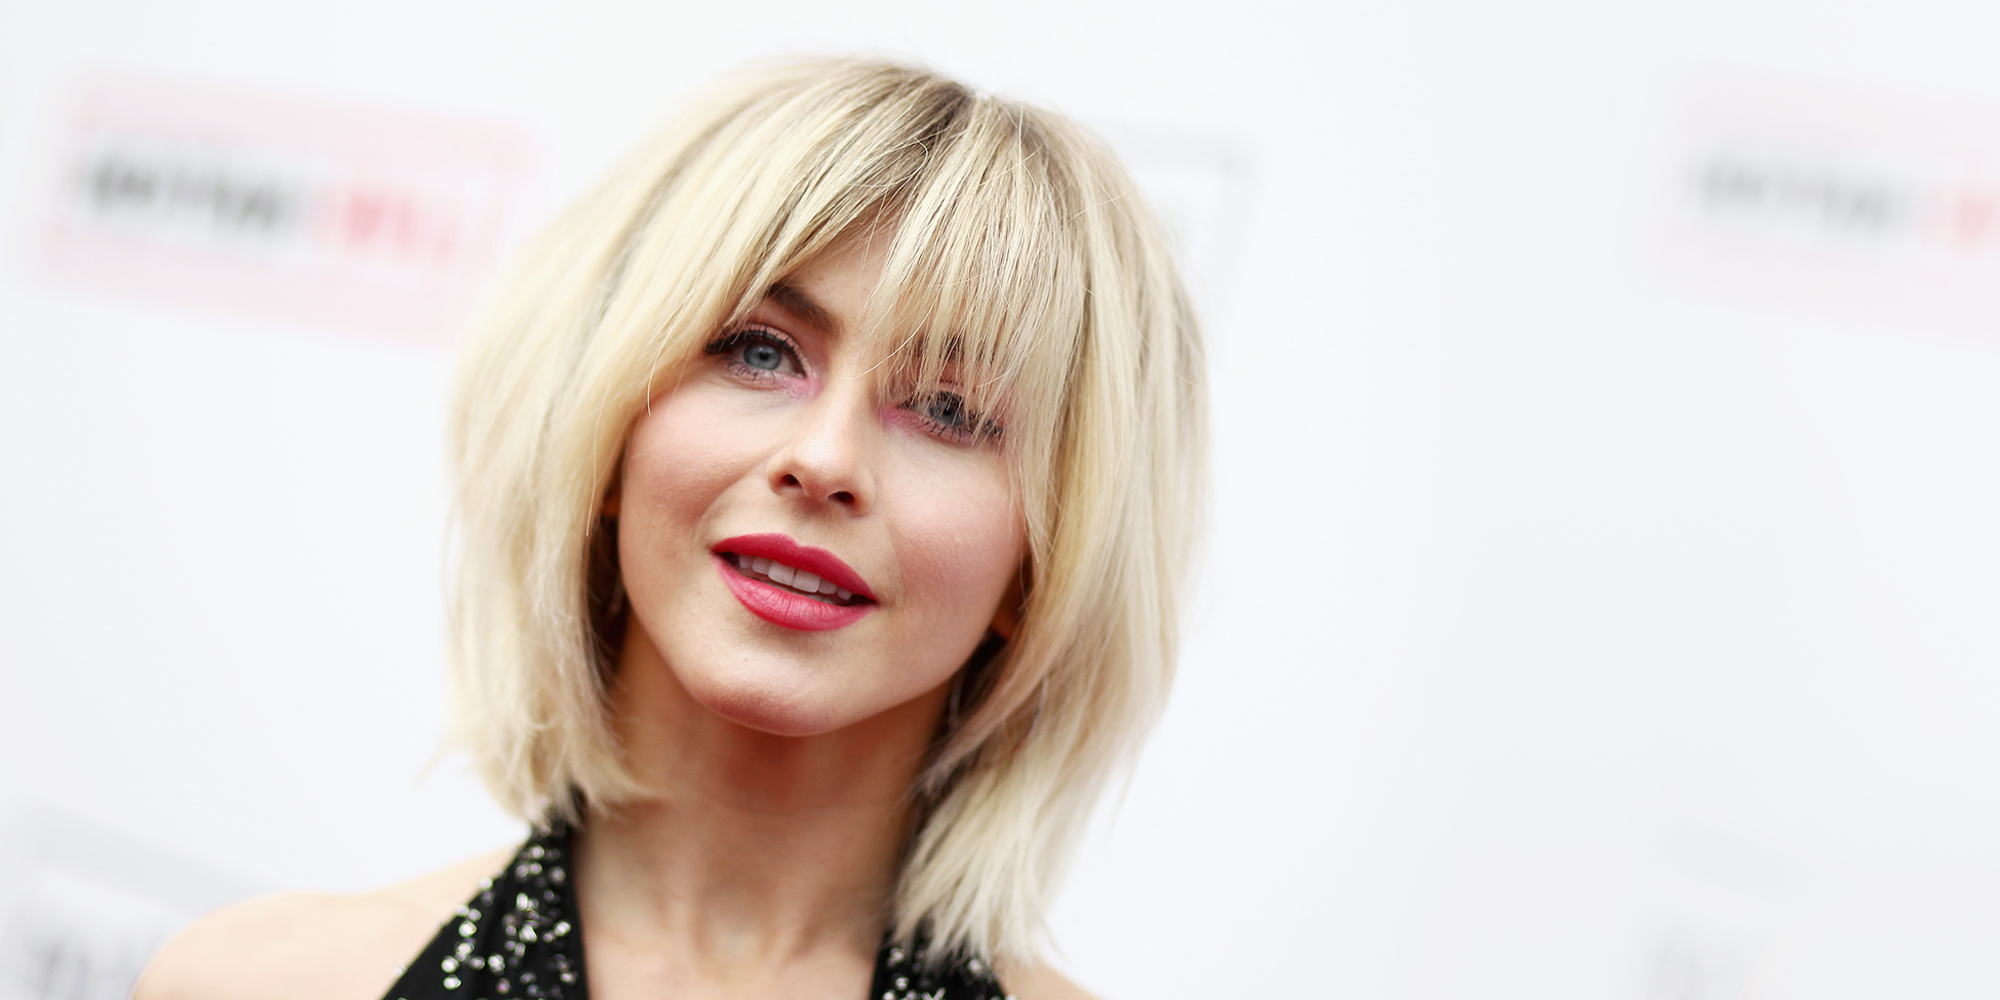 40 Best Hairstyles With Bangs – Photos Of Celebrity Haircuts In Most Current Feathery Bangs Hairstyles With A Shaggy Pixie (View 18 of 20)